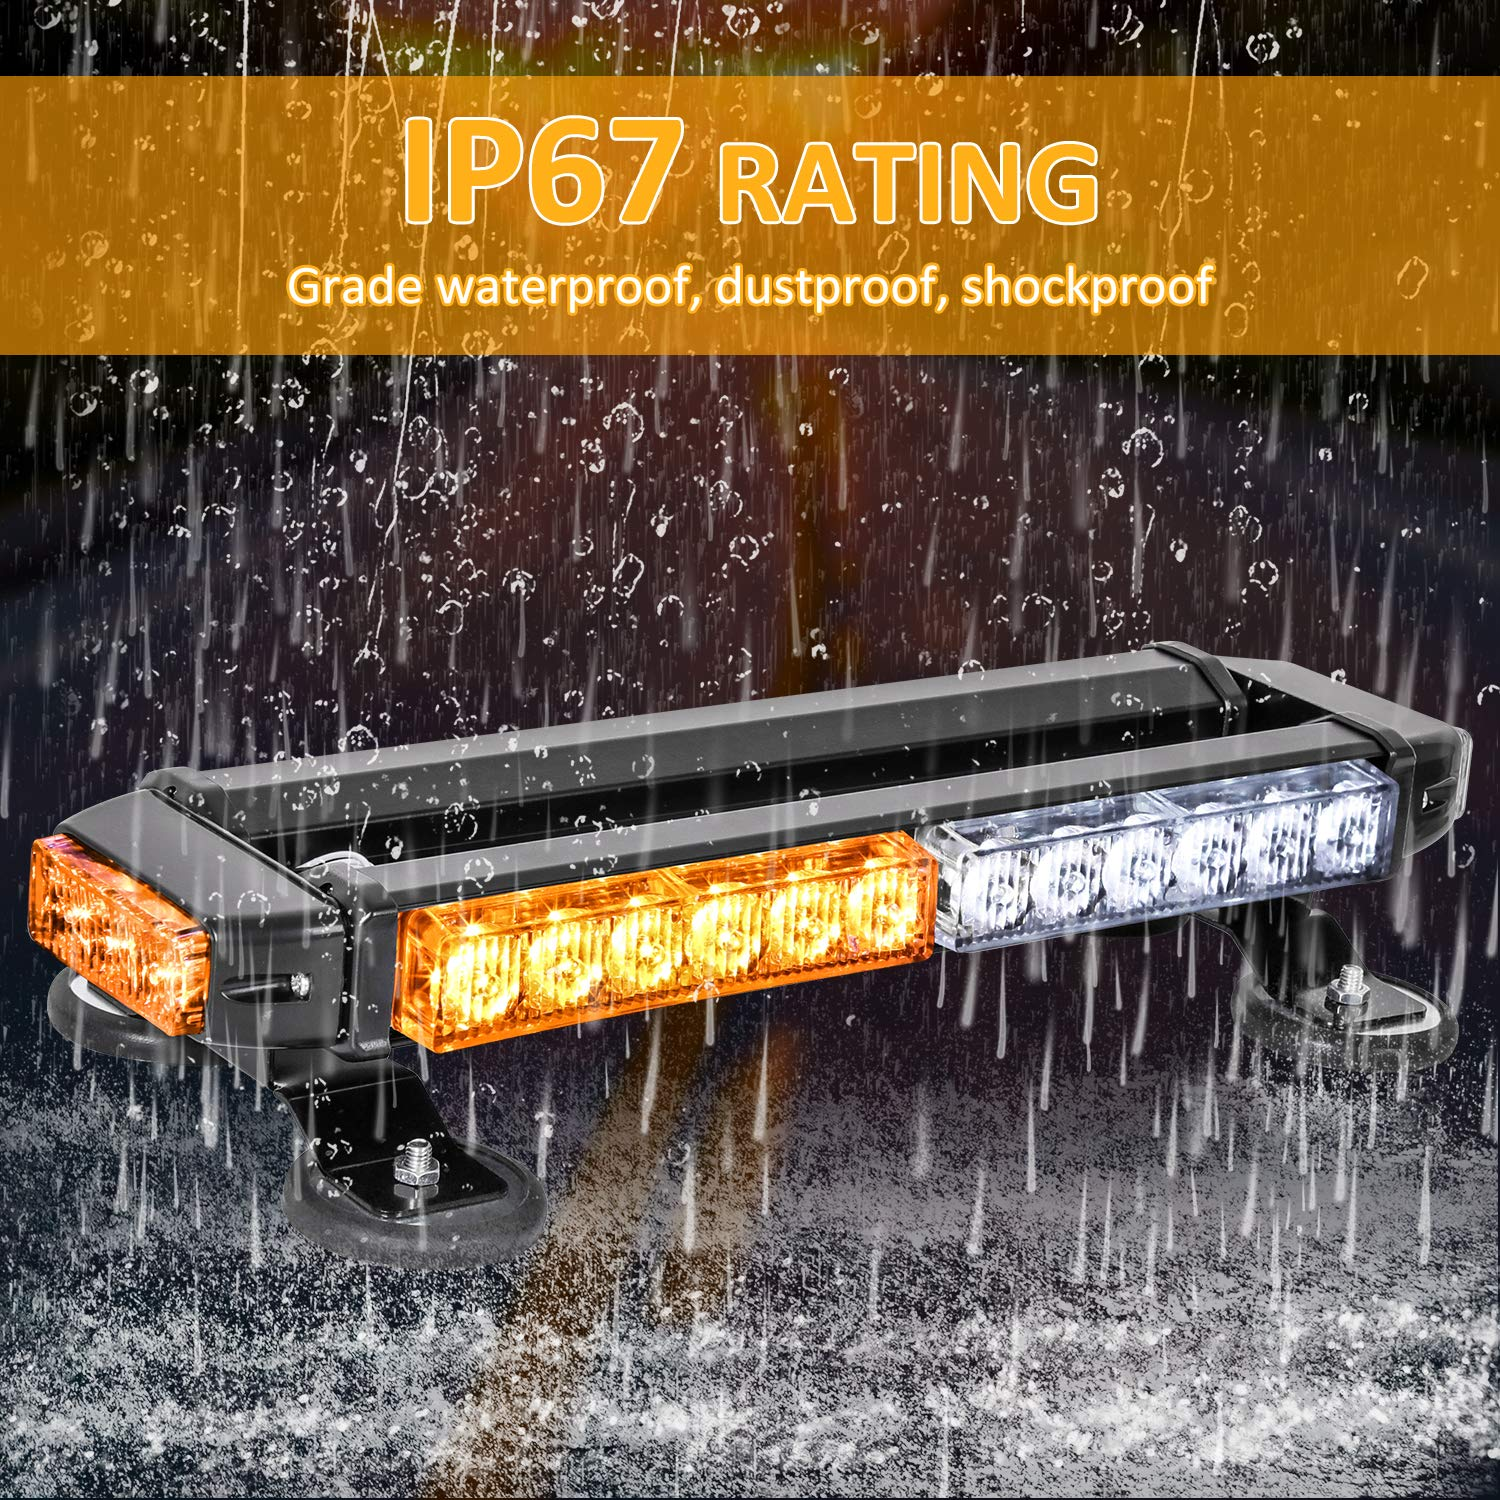 30 LED High Intensity Emergency Hazard Warning Lighting Bar//Beacon//with Magnetic Base and 16 ft Straight Cord for Car Trailer Roof Safety Zmoon LED Strobe Flashing Light Bar Amber//White